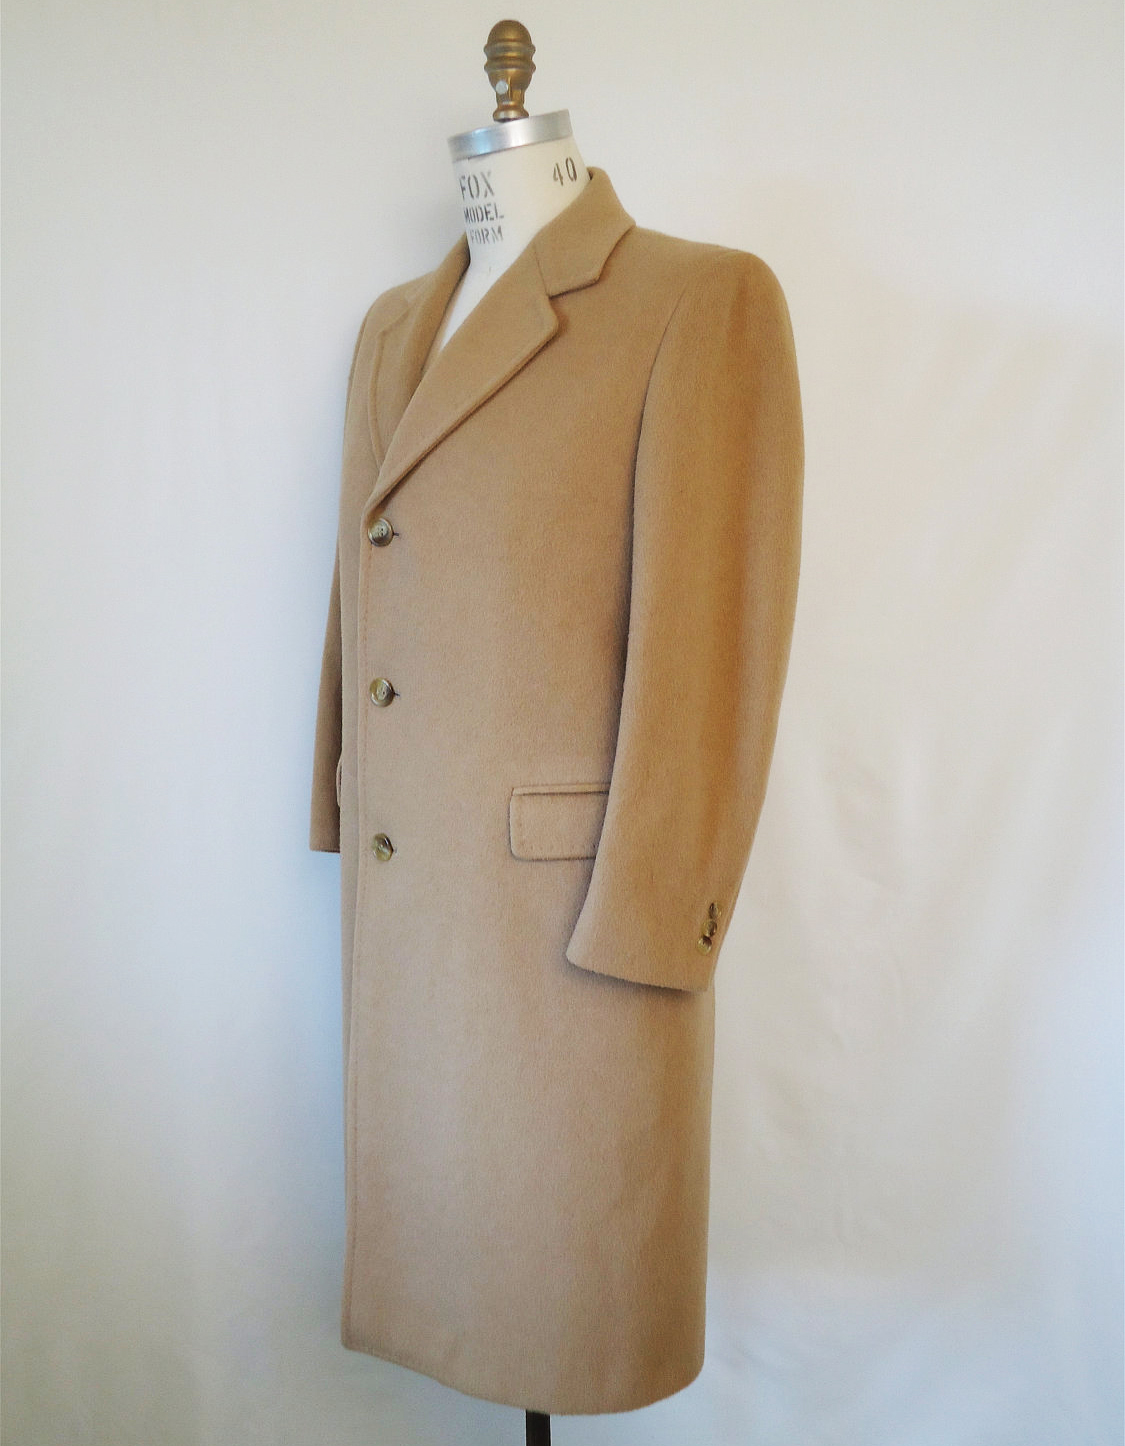 Camel Season Camel Hair Coats Blazers Amp More Company Man